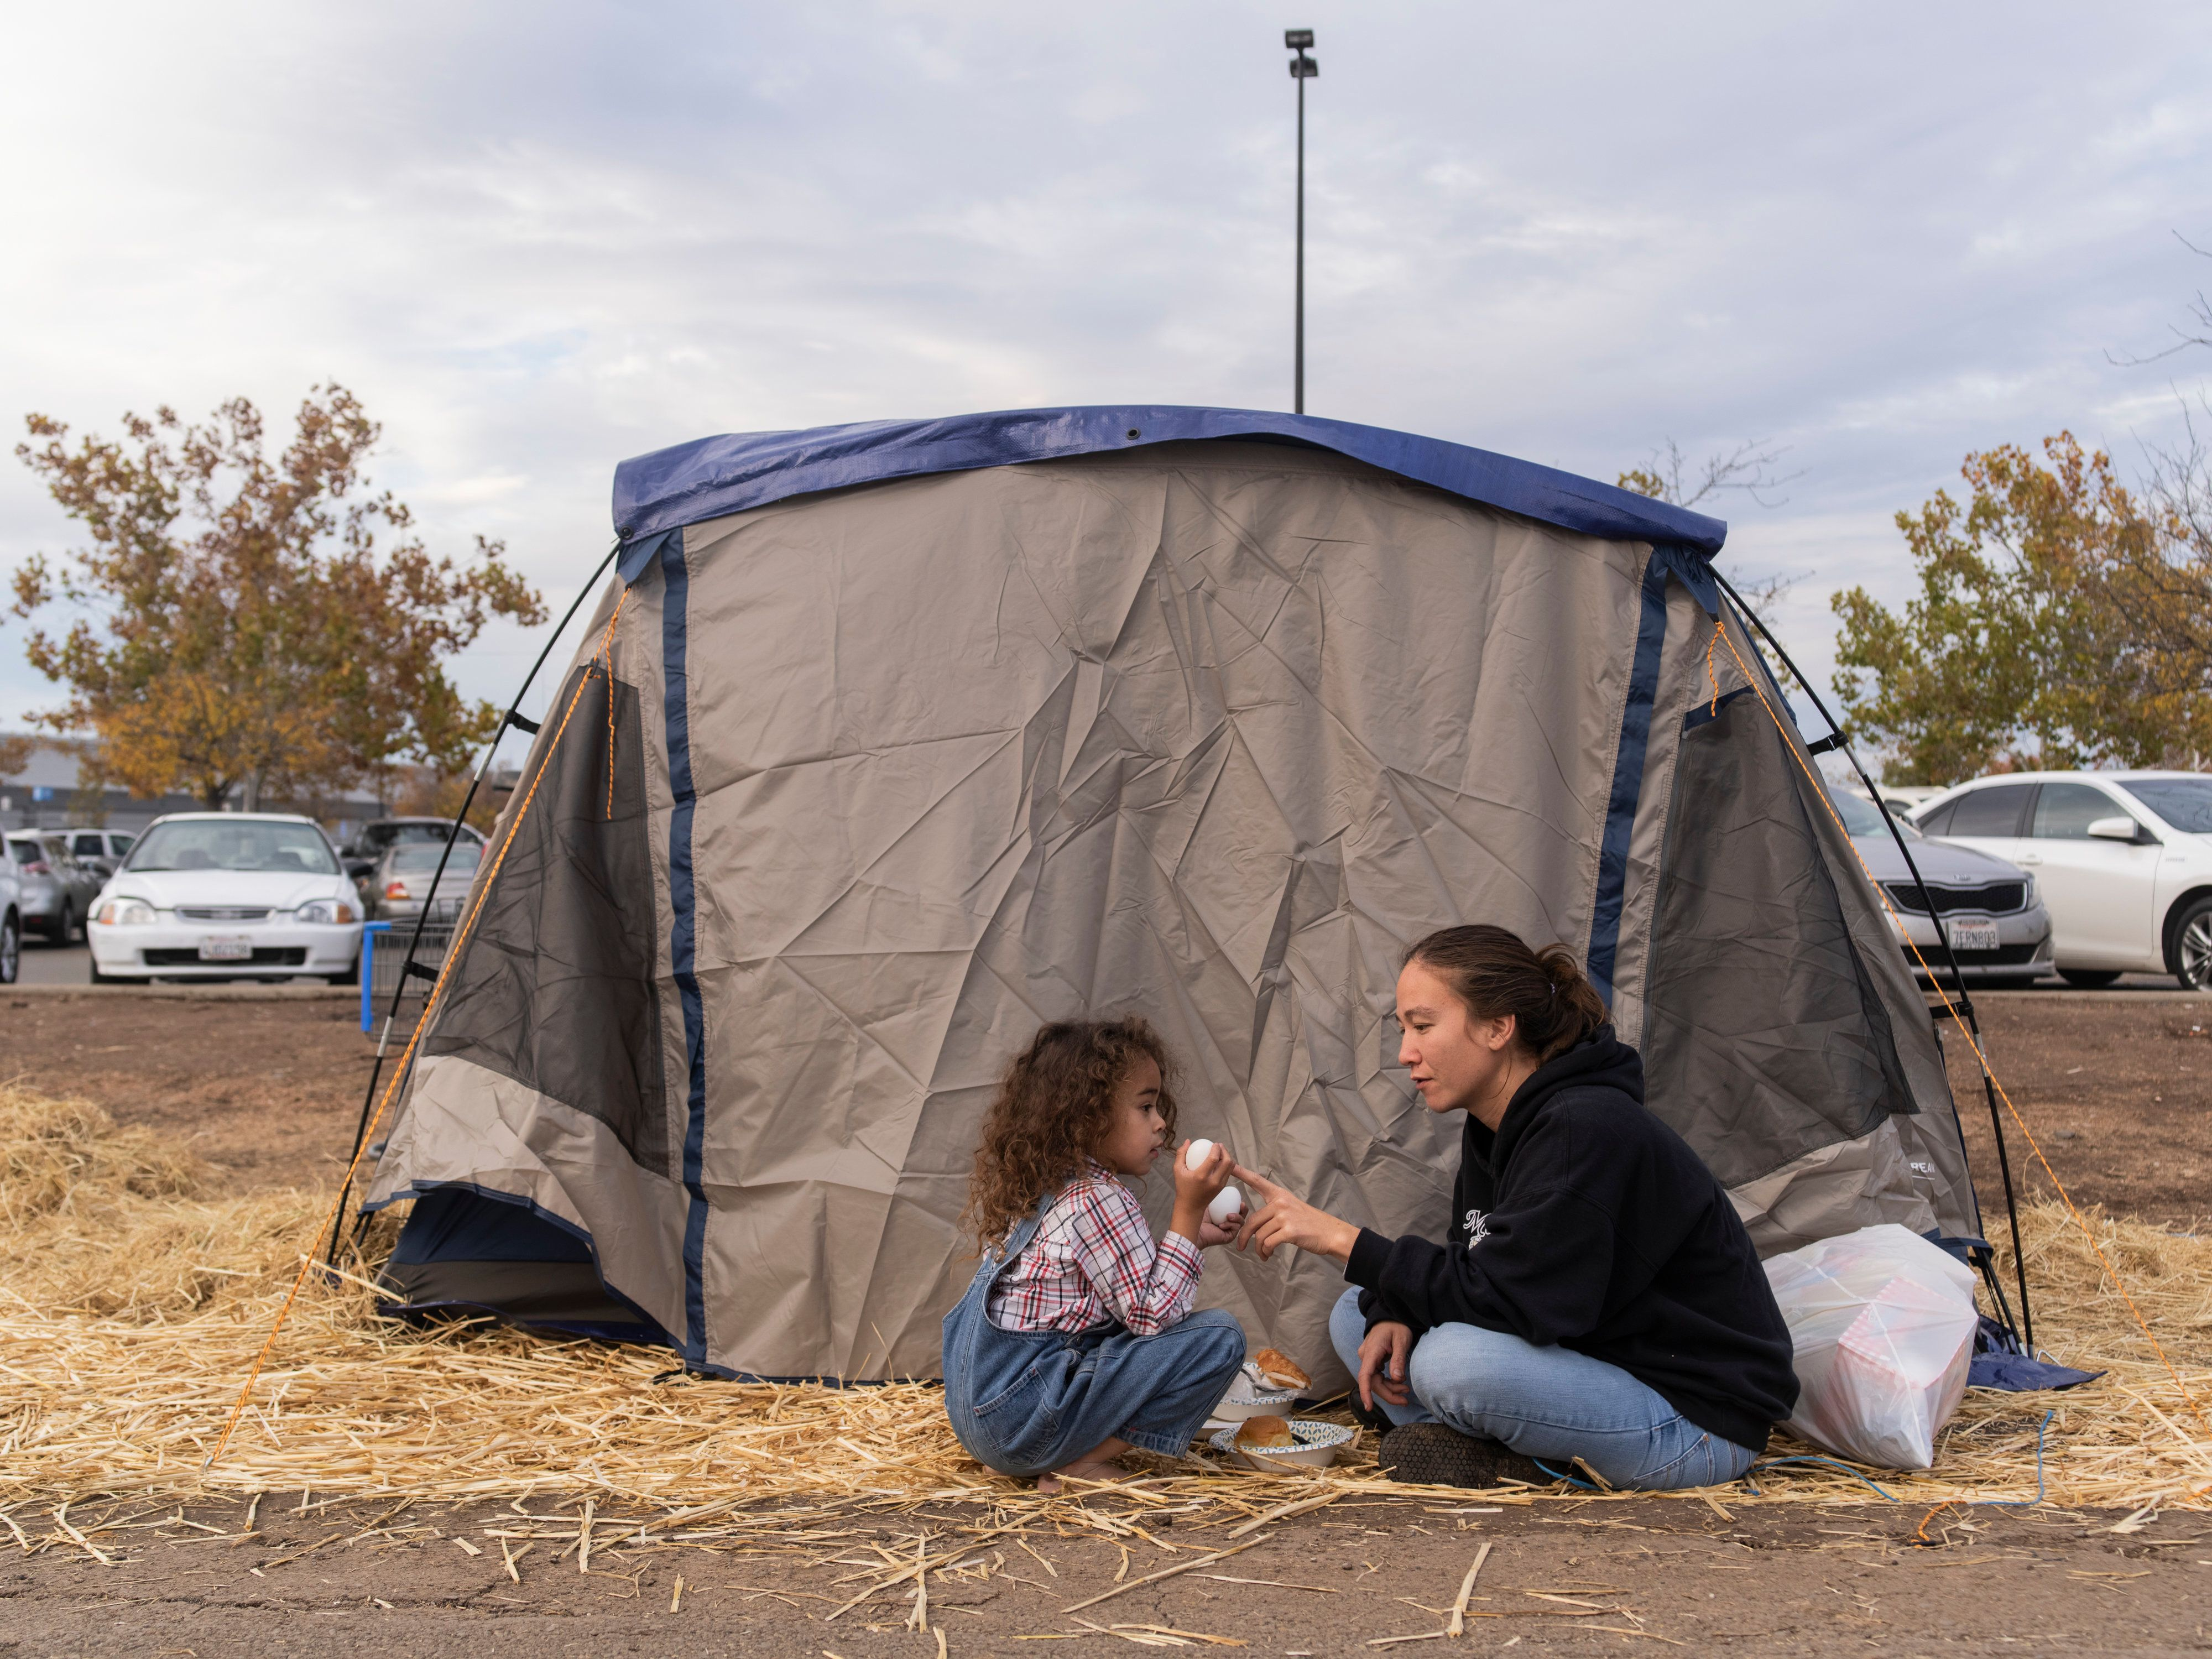 Rubyjade Stewart and her son, Rene, eat lunch at their tent in the Walmart lot on Wednesday between rain showers. By Thursday